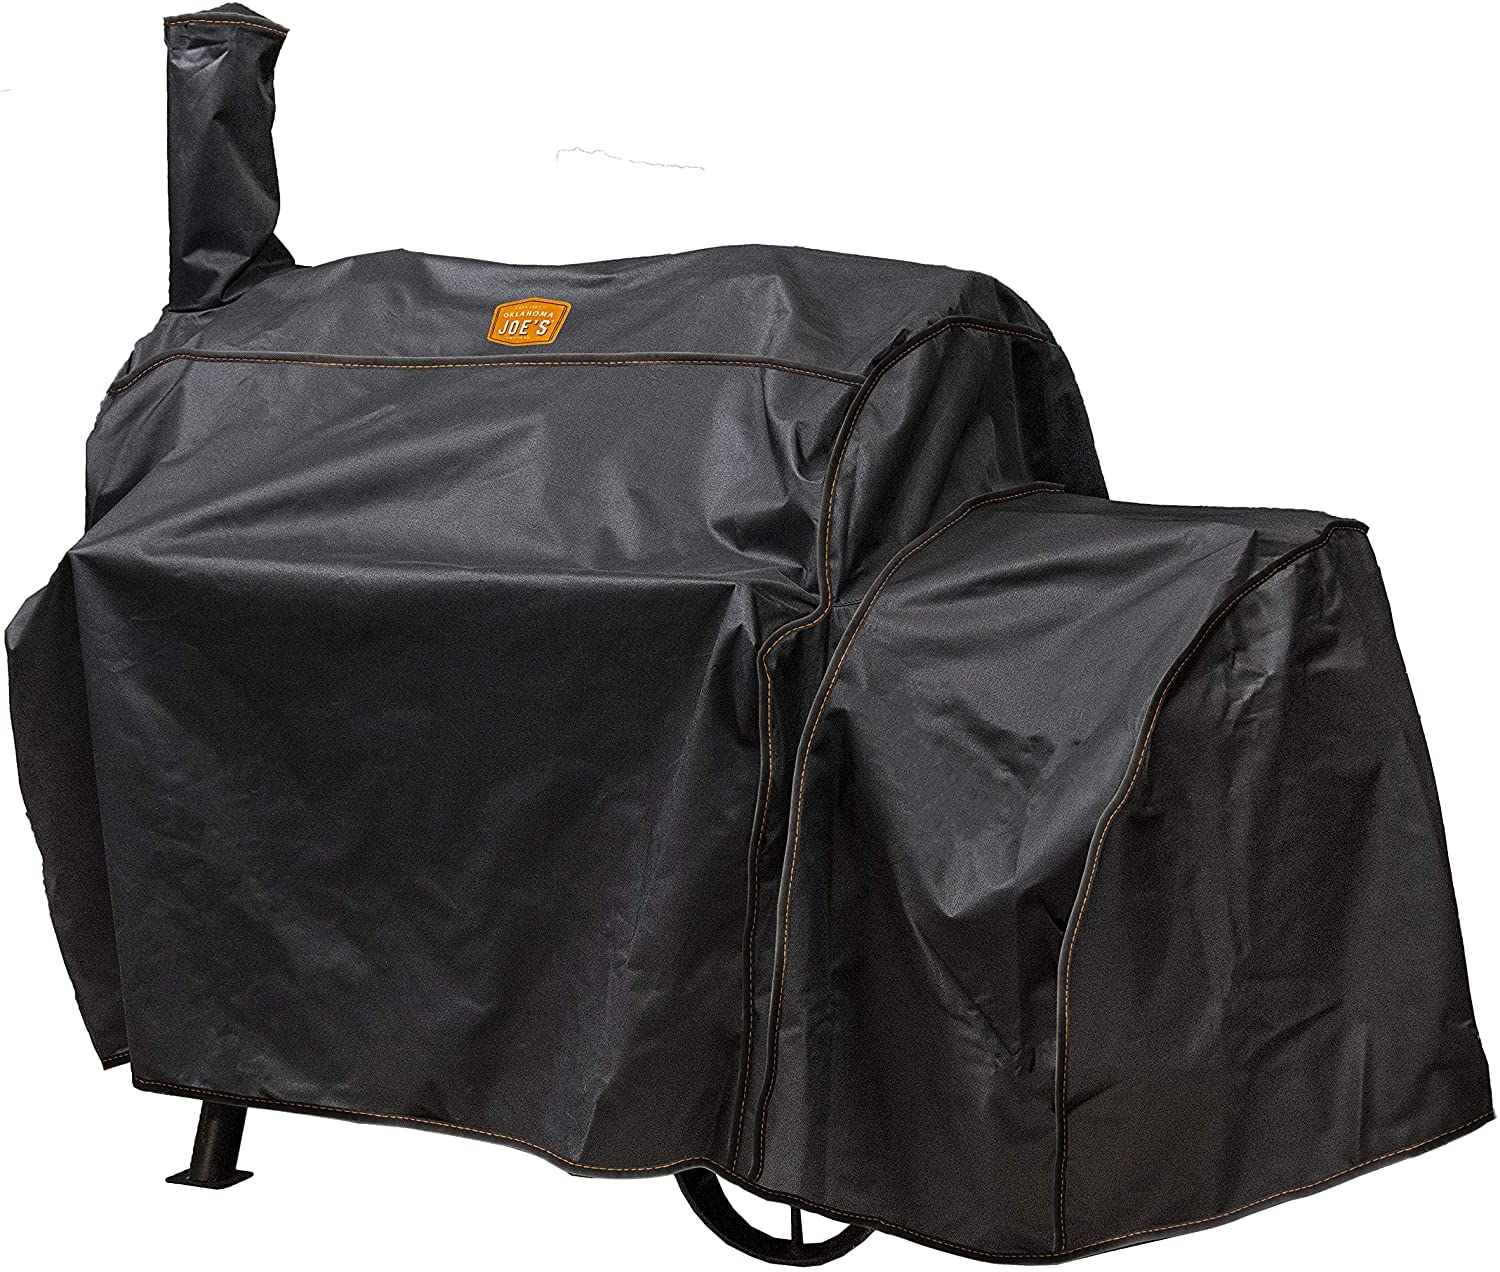 Oklahoma Joe's Highland Offset Smoker Cover, Black : Garden & Outdoor